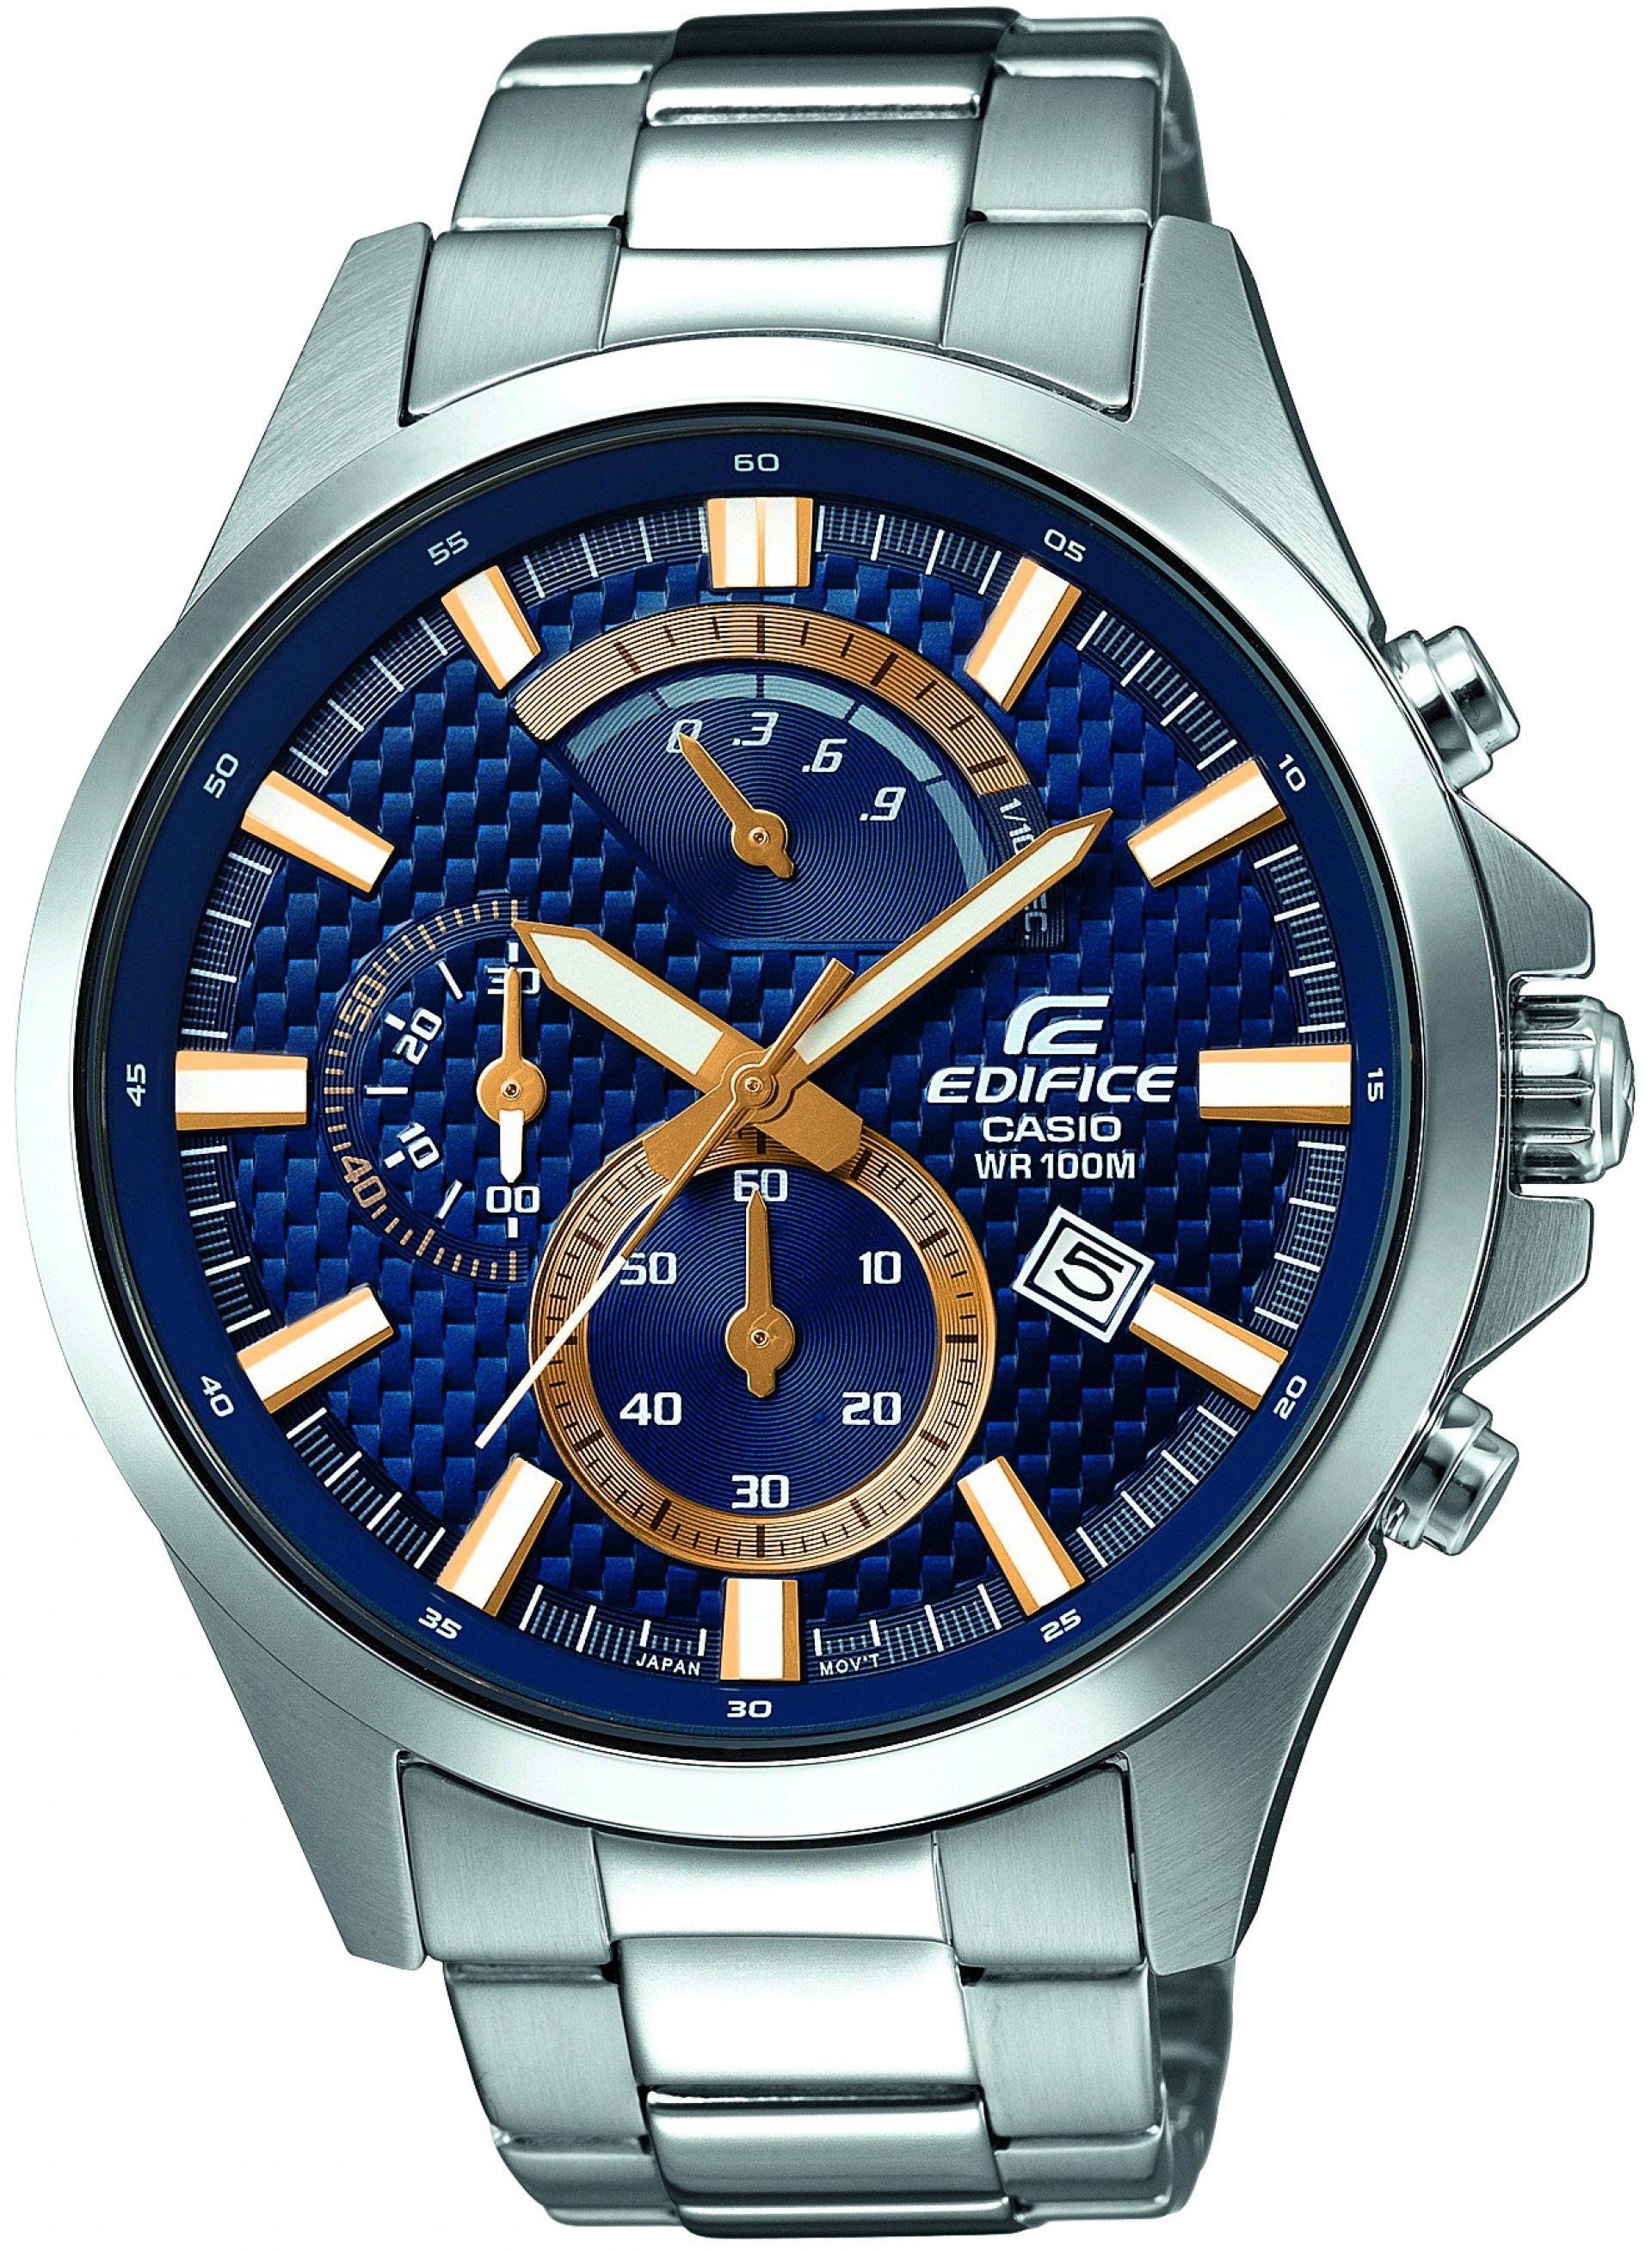 Мужские часы Casio Edifice EFV-530D-1AVUEF